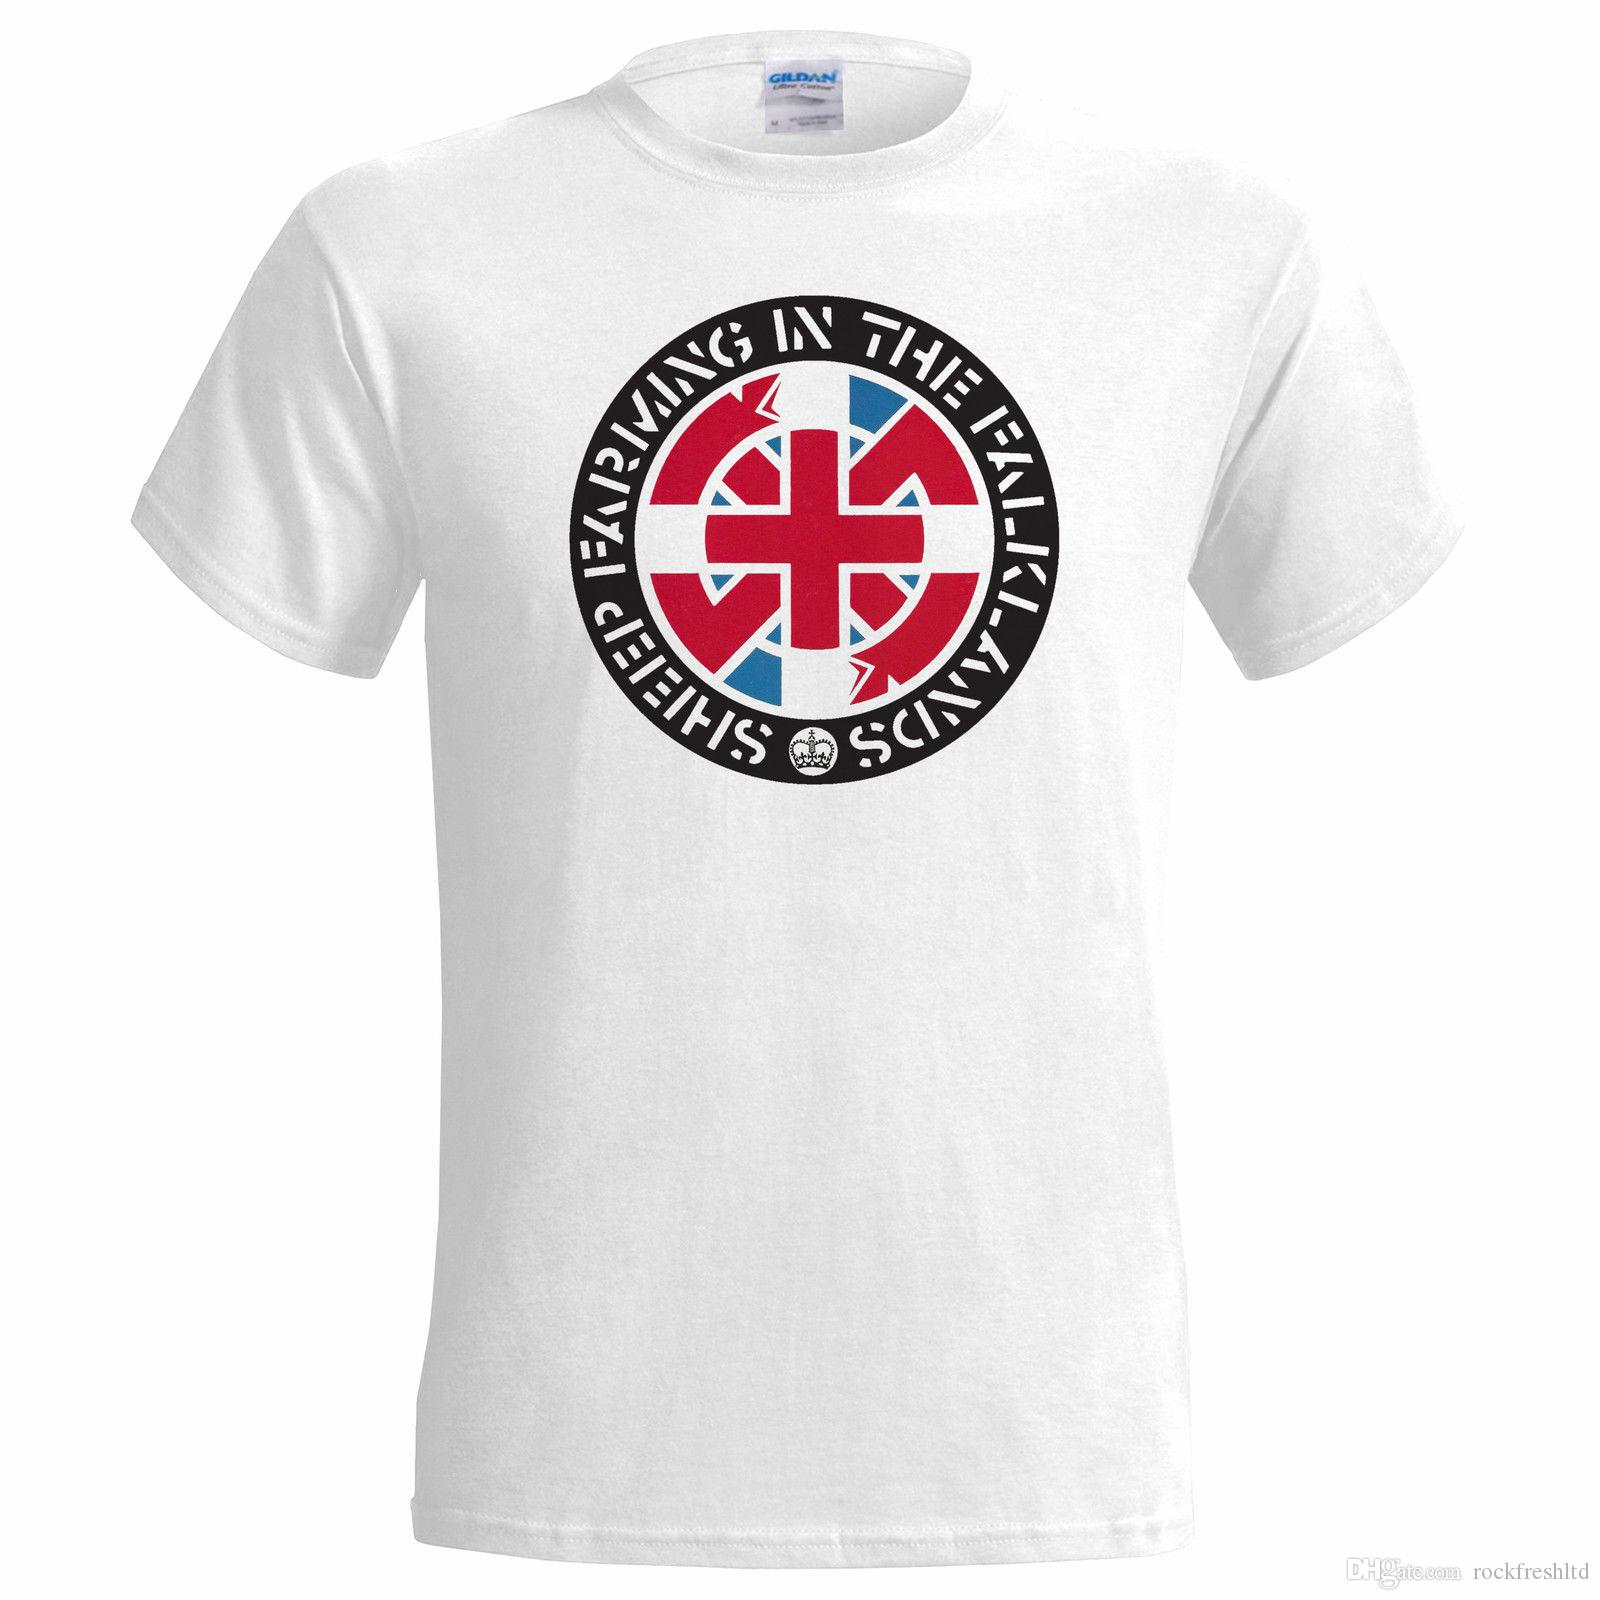 14bf83704 Crass Sheep Farming In The Falklands Steve Ignorant Punk Anarchy Chaos  Disobey R Shirt Political Tee Shirts From Rockfreshltd, $10.18| DHgate.Com